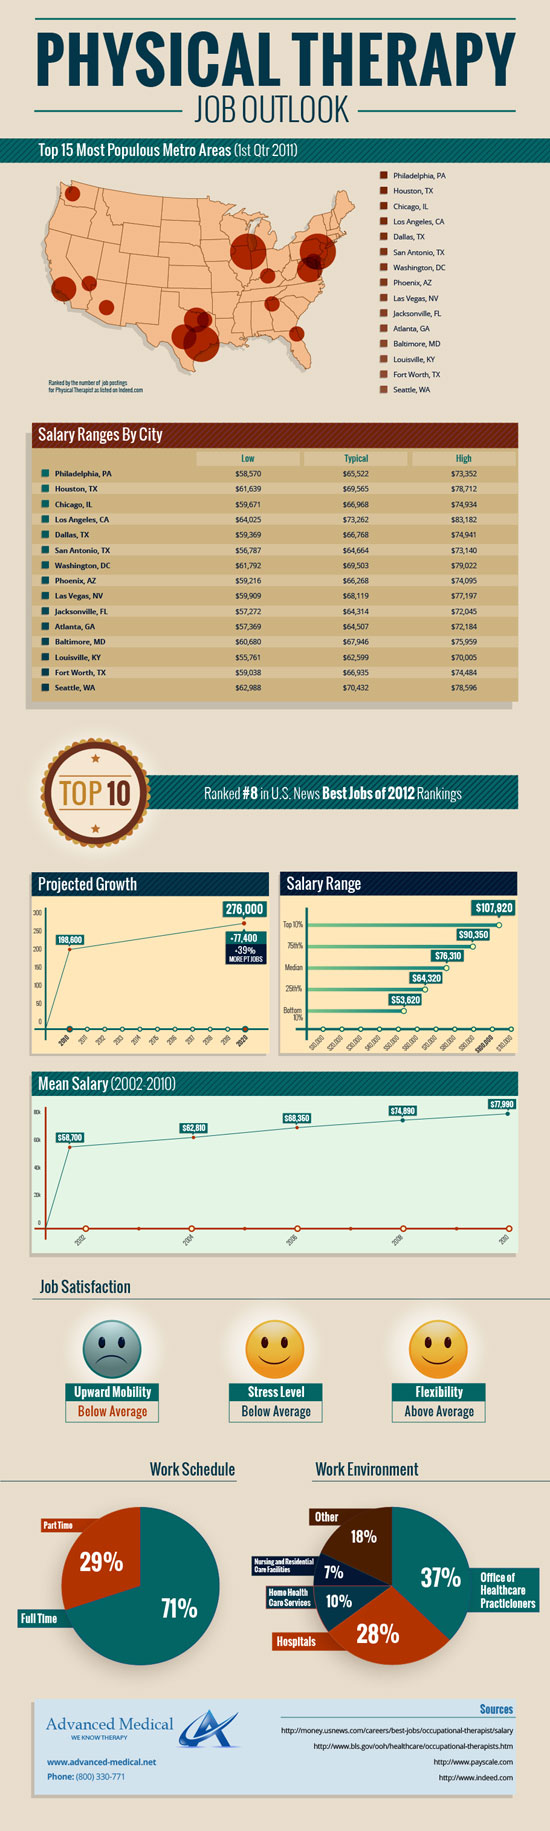 Graduated school for physical therapy - Physical Therapy Job Outlook Infographic